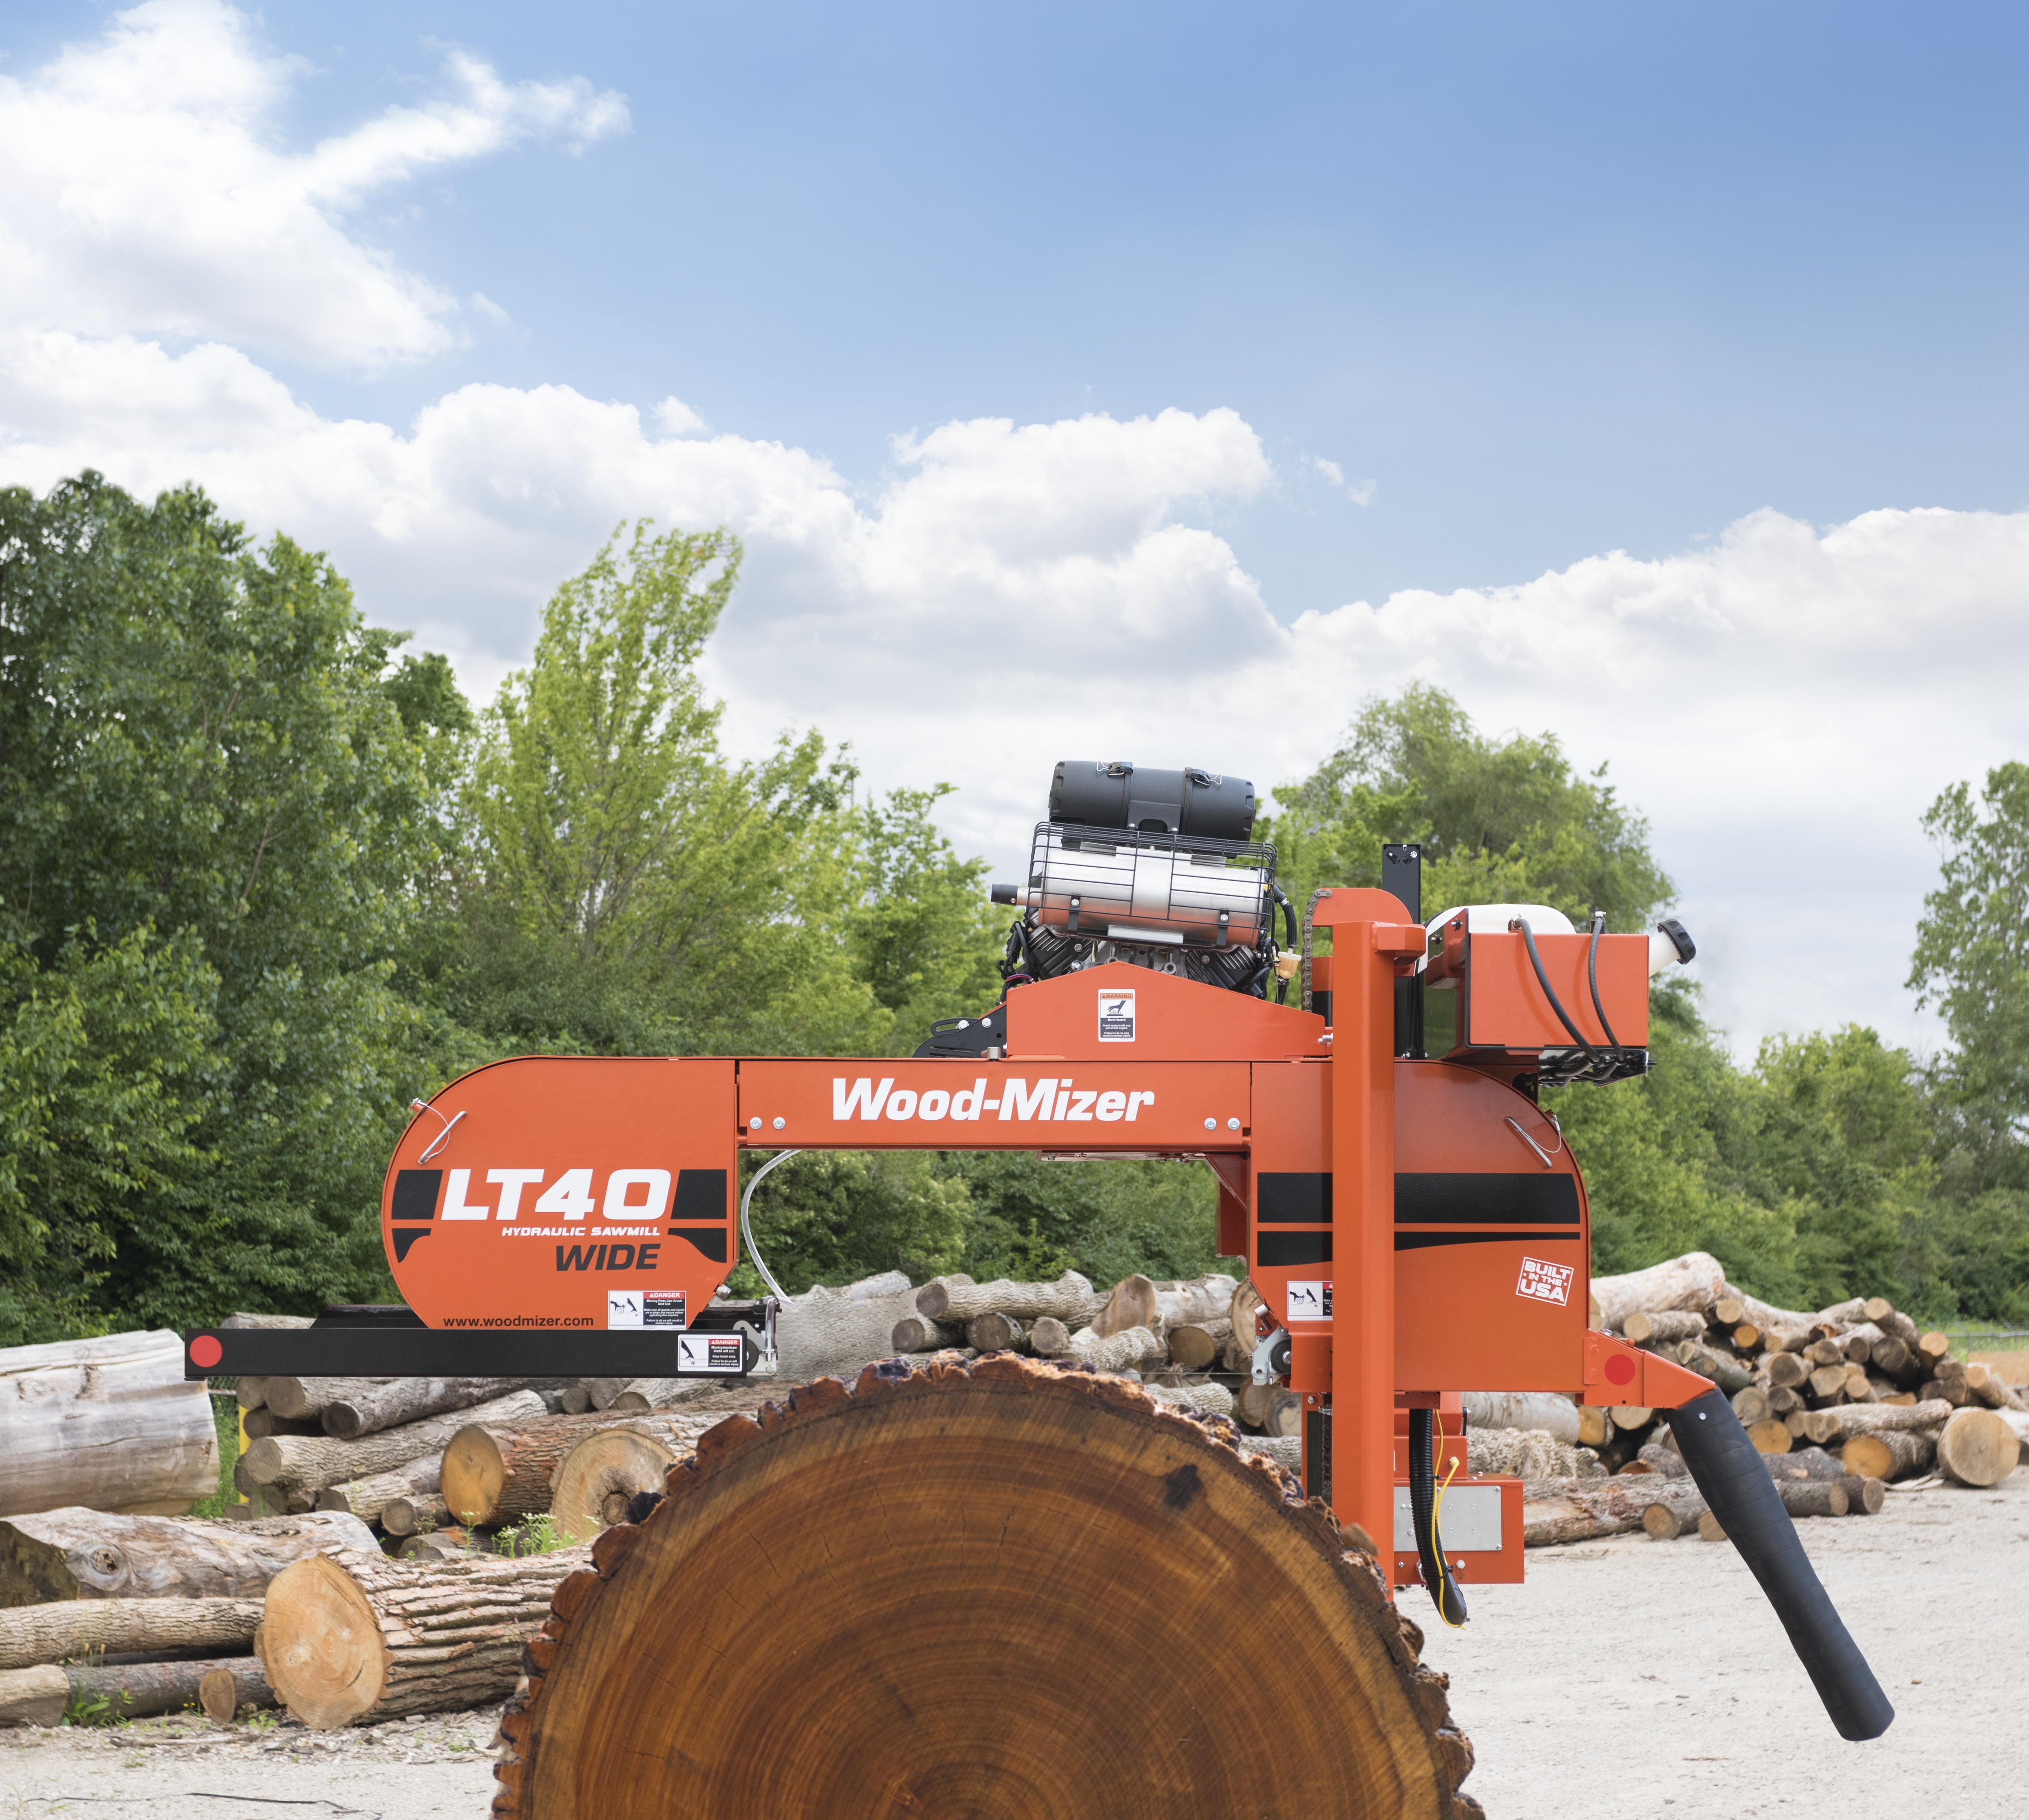 wood-mizer | Search Results | Illinois Urban Wood | Page 2